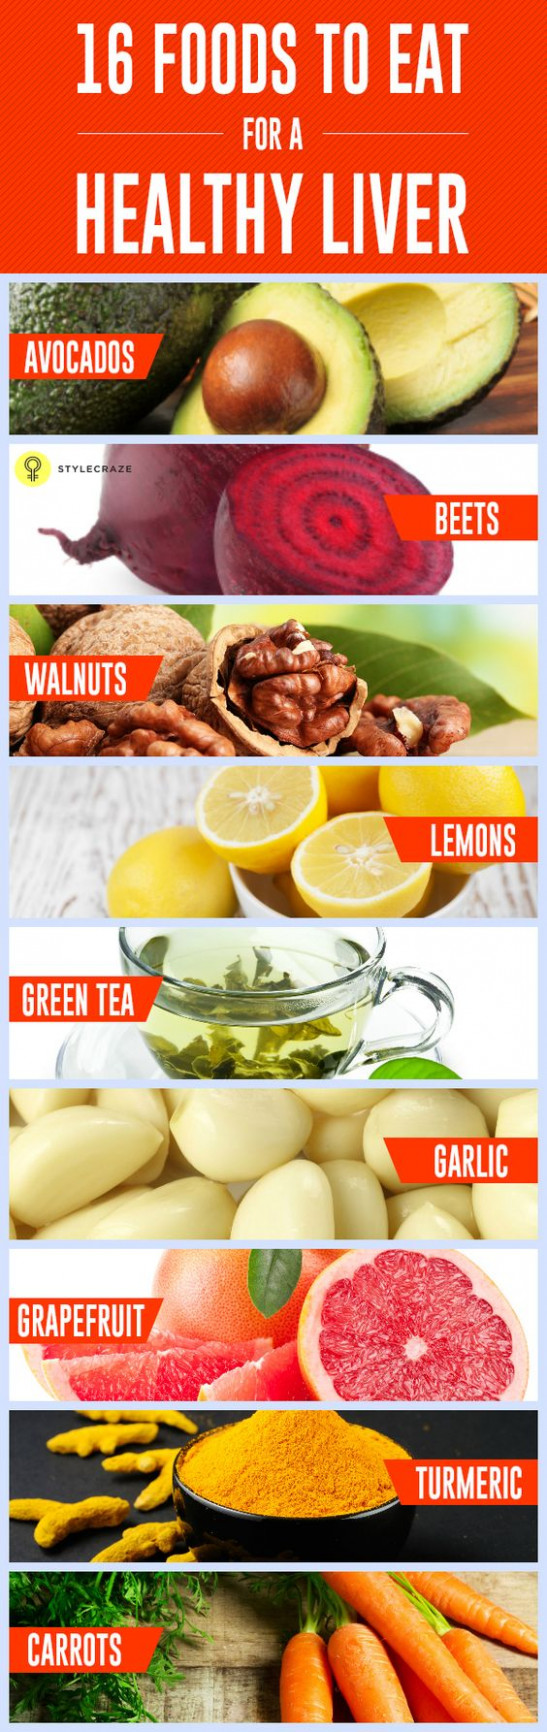 16 Foods To Eat For A Healthy Liver | Spinach pasta ...